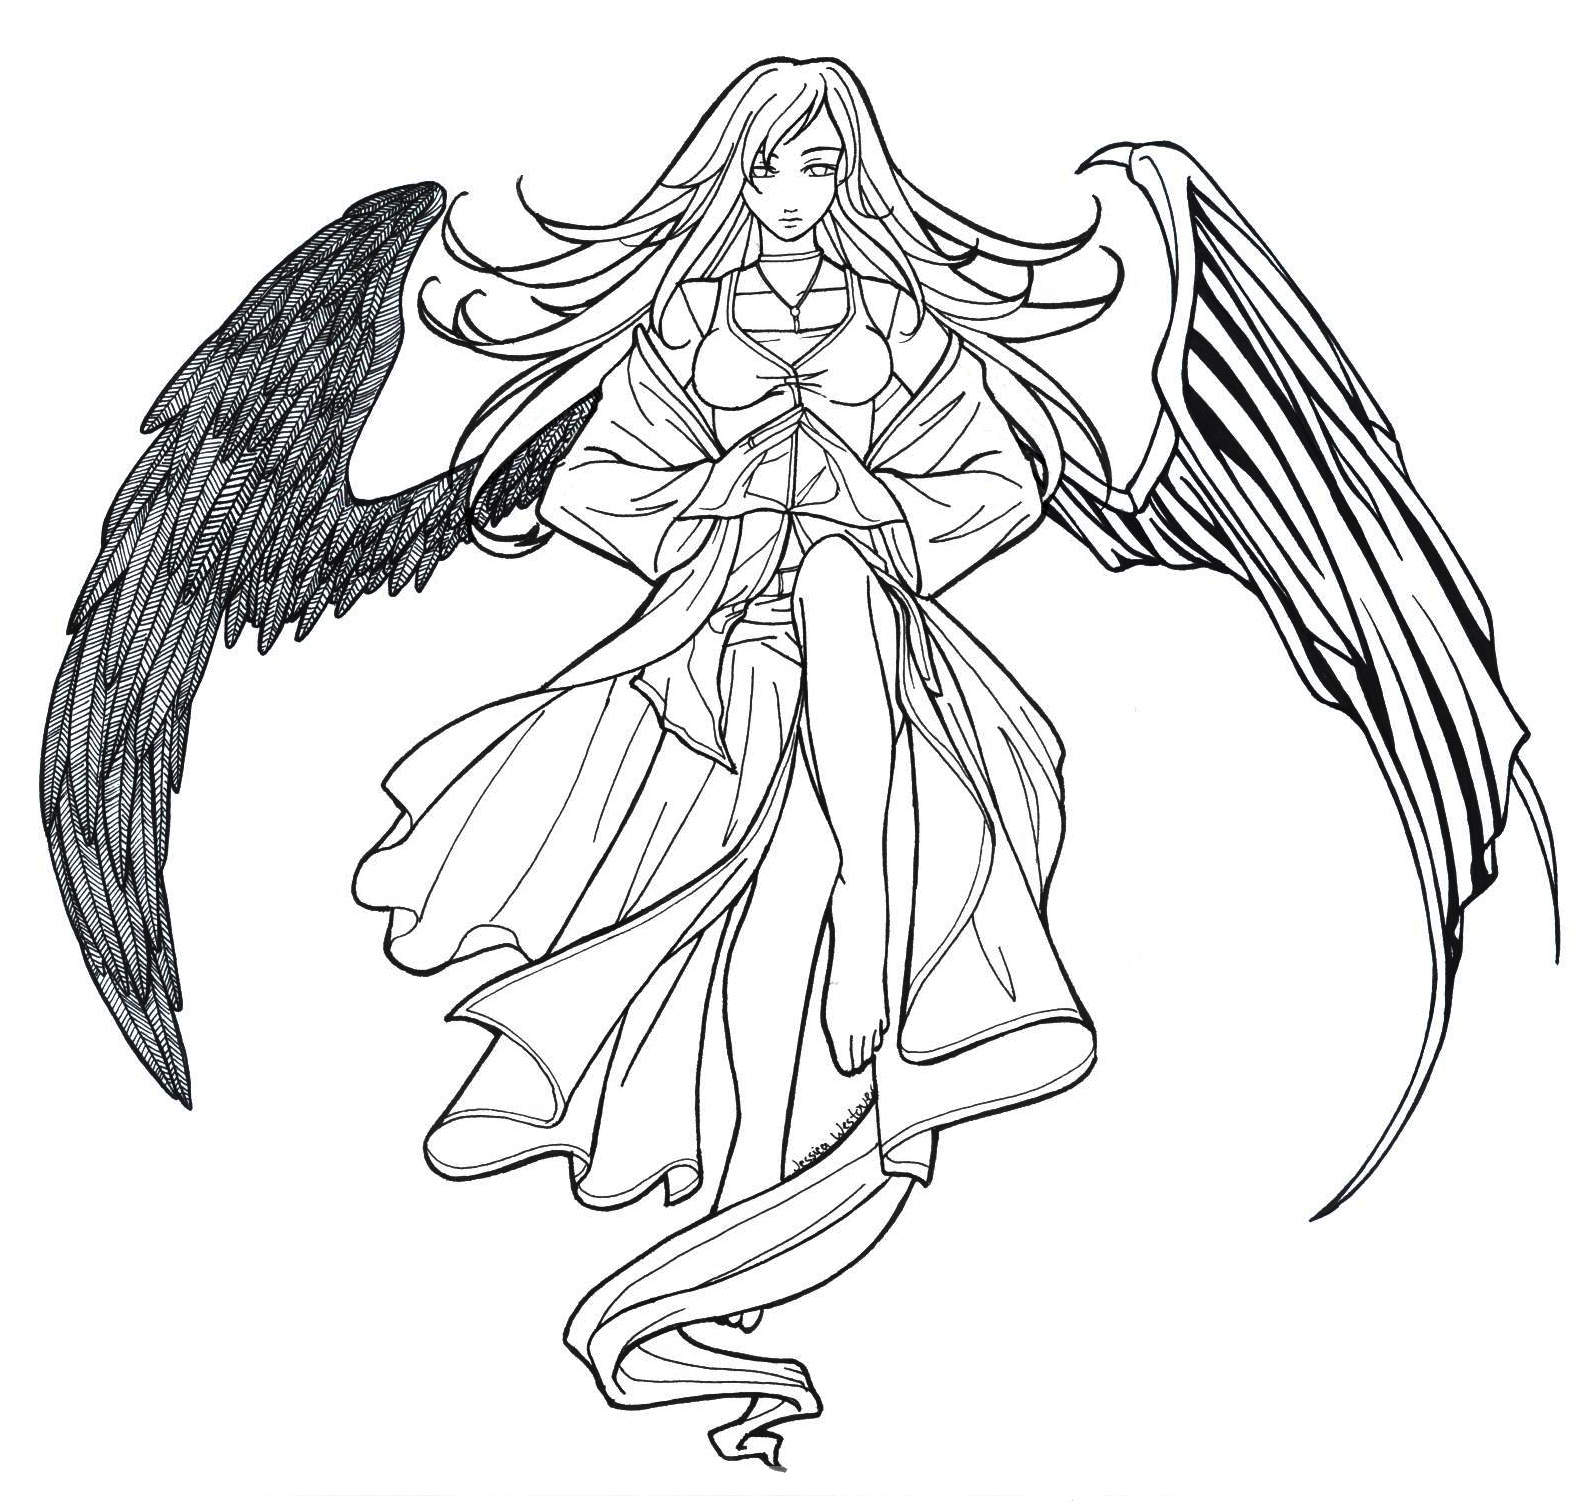 coloring pages of fallen angels - photo#16